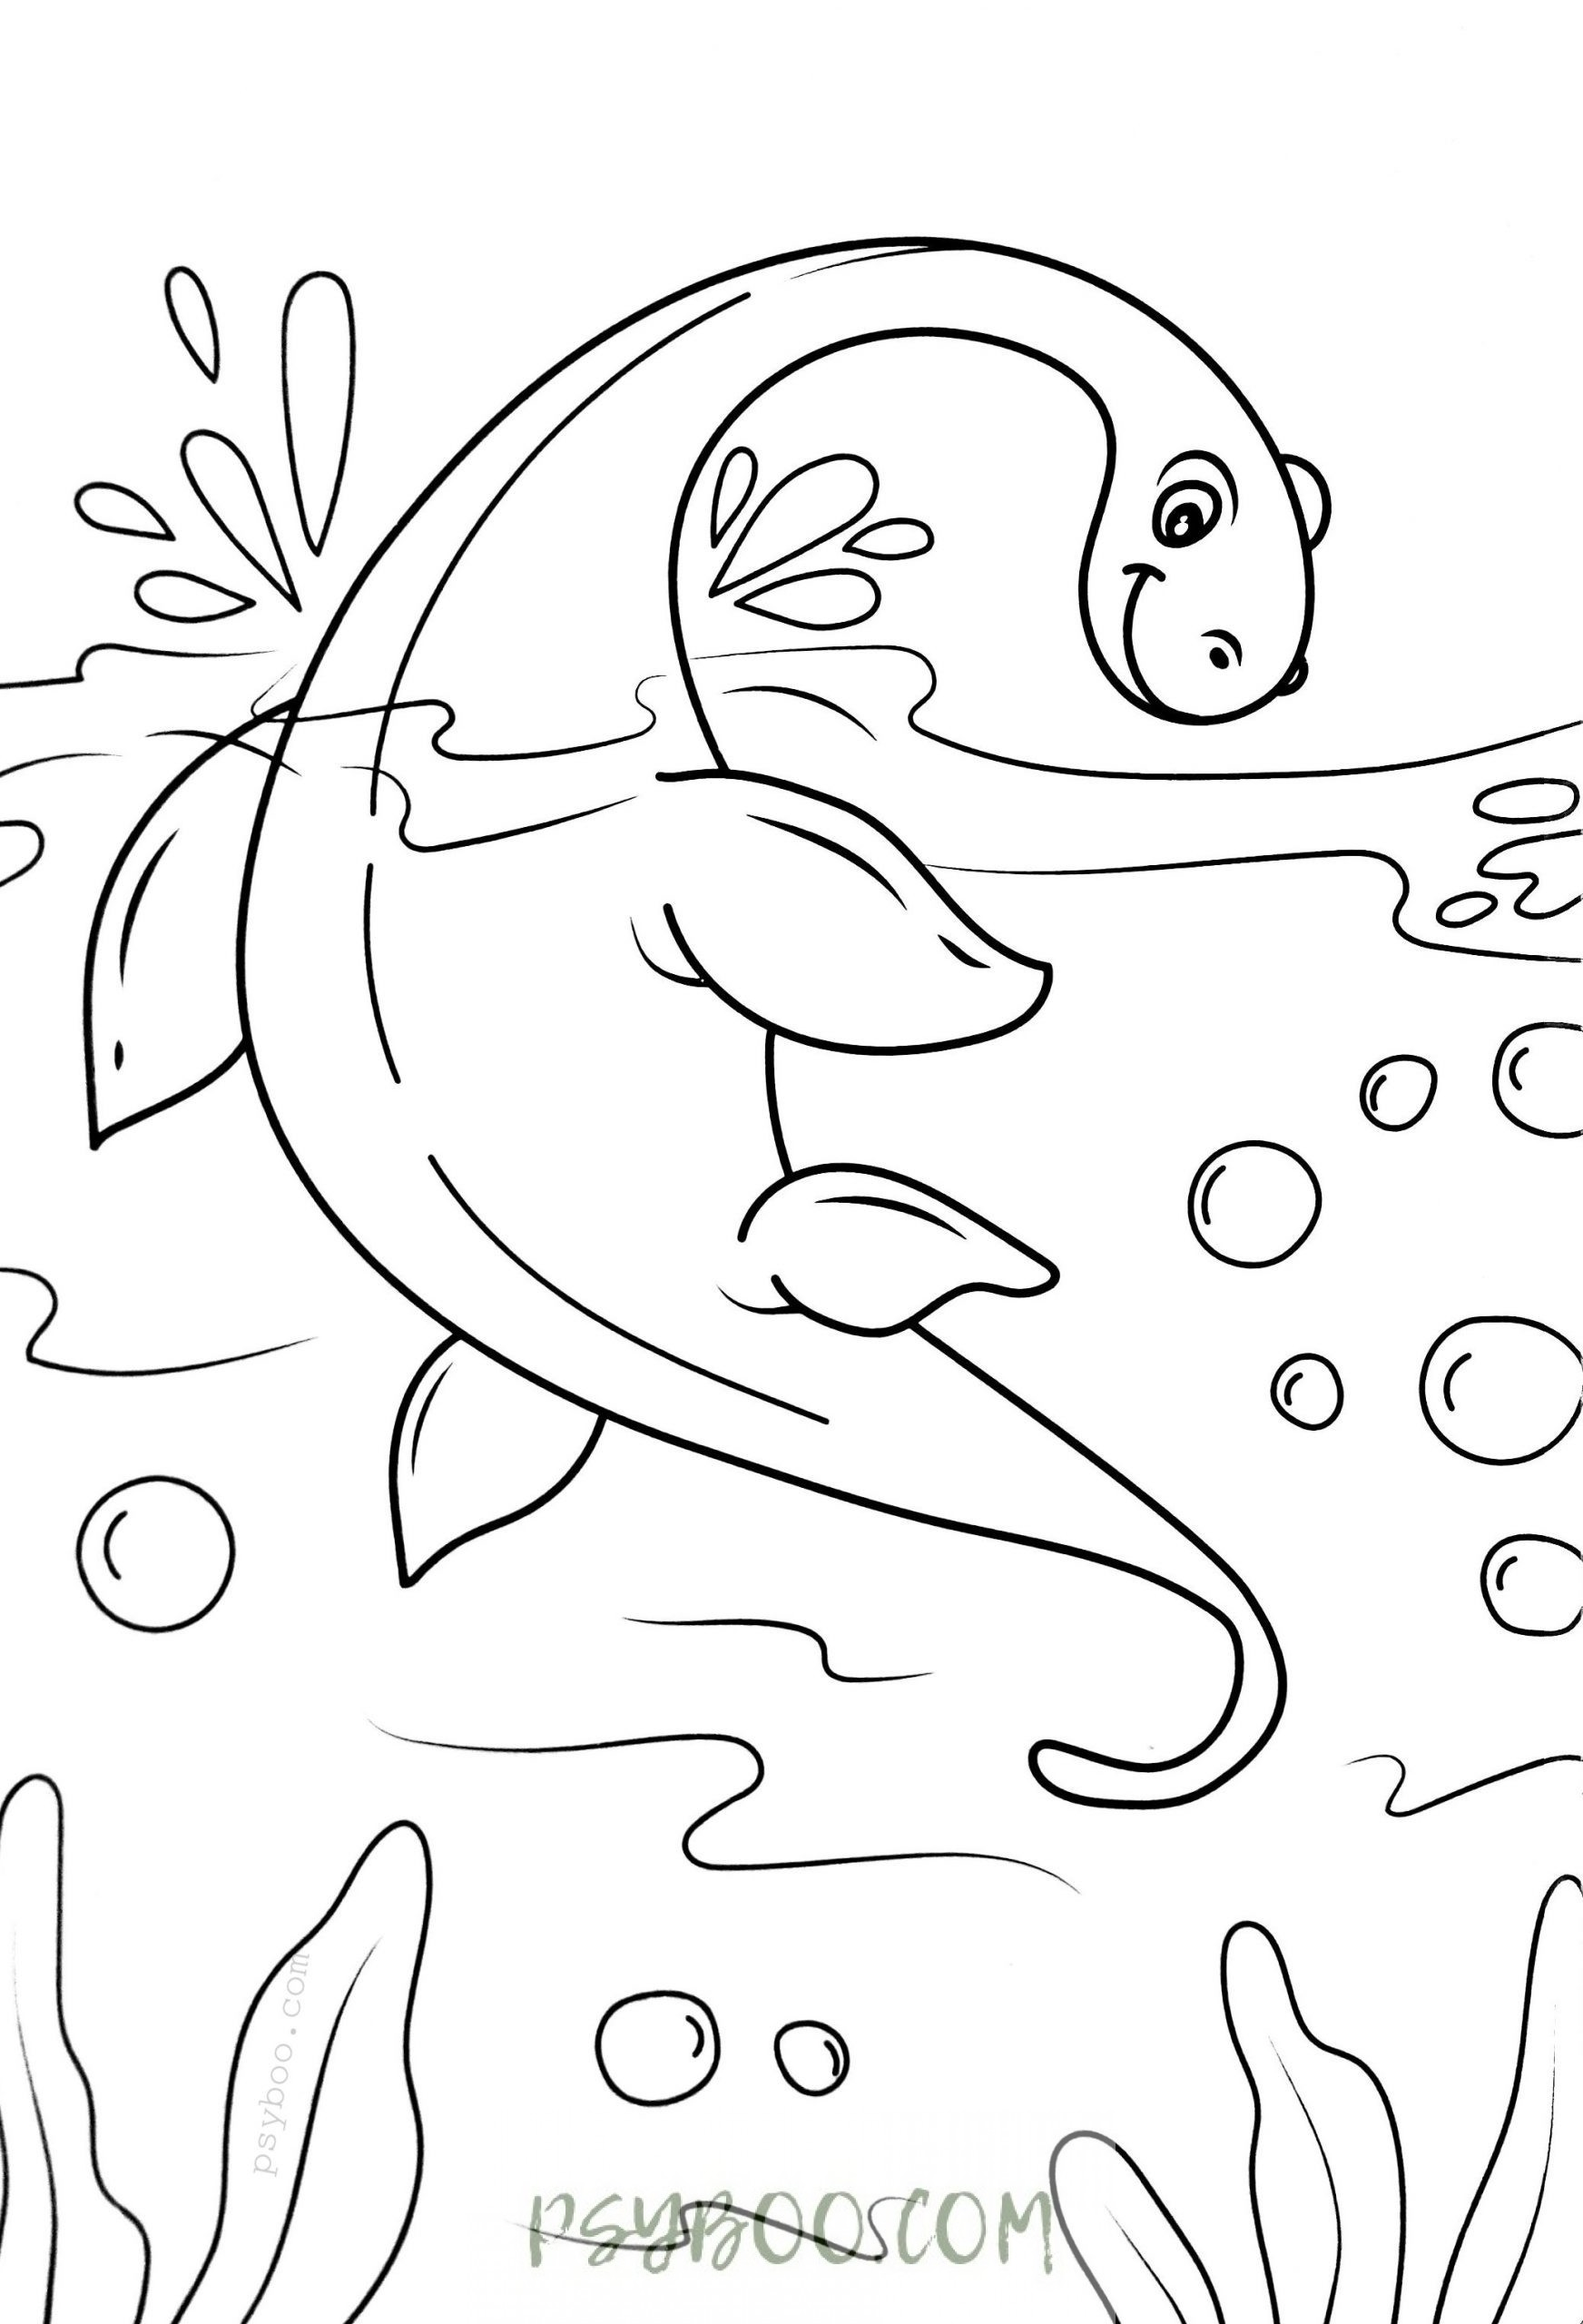 loch ness monster coloring pages smalltalkwitht download loch ness monster coloring pages png loch coloring monster ness pages